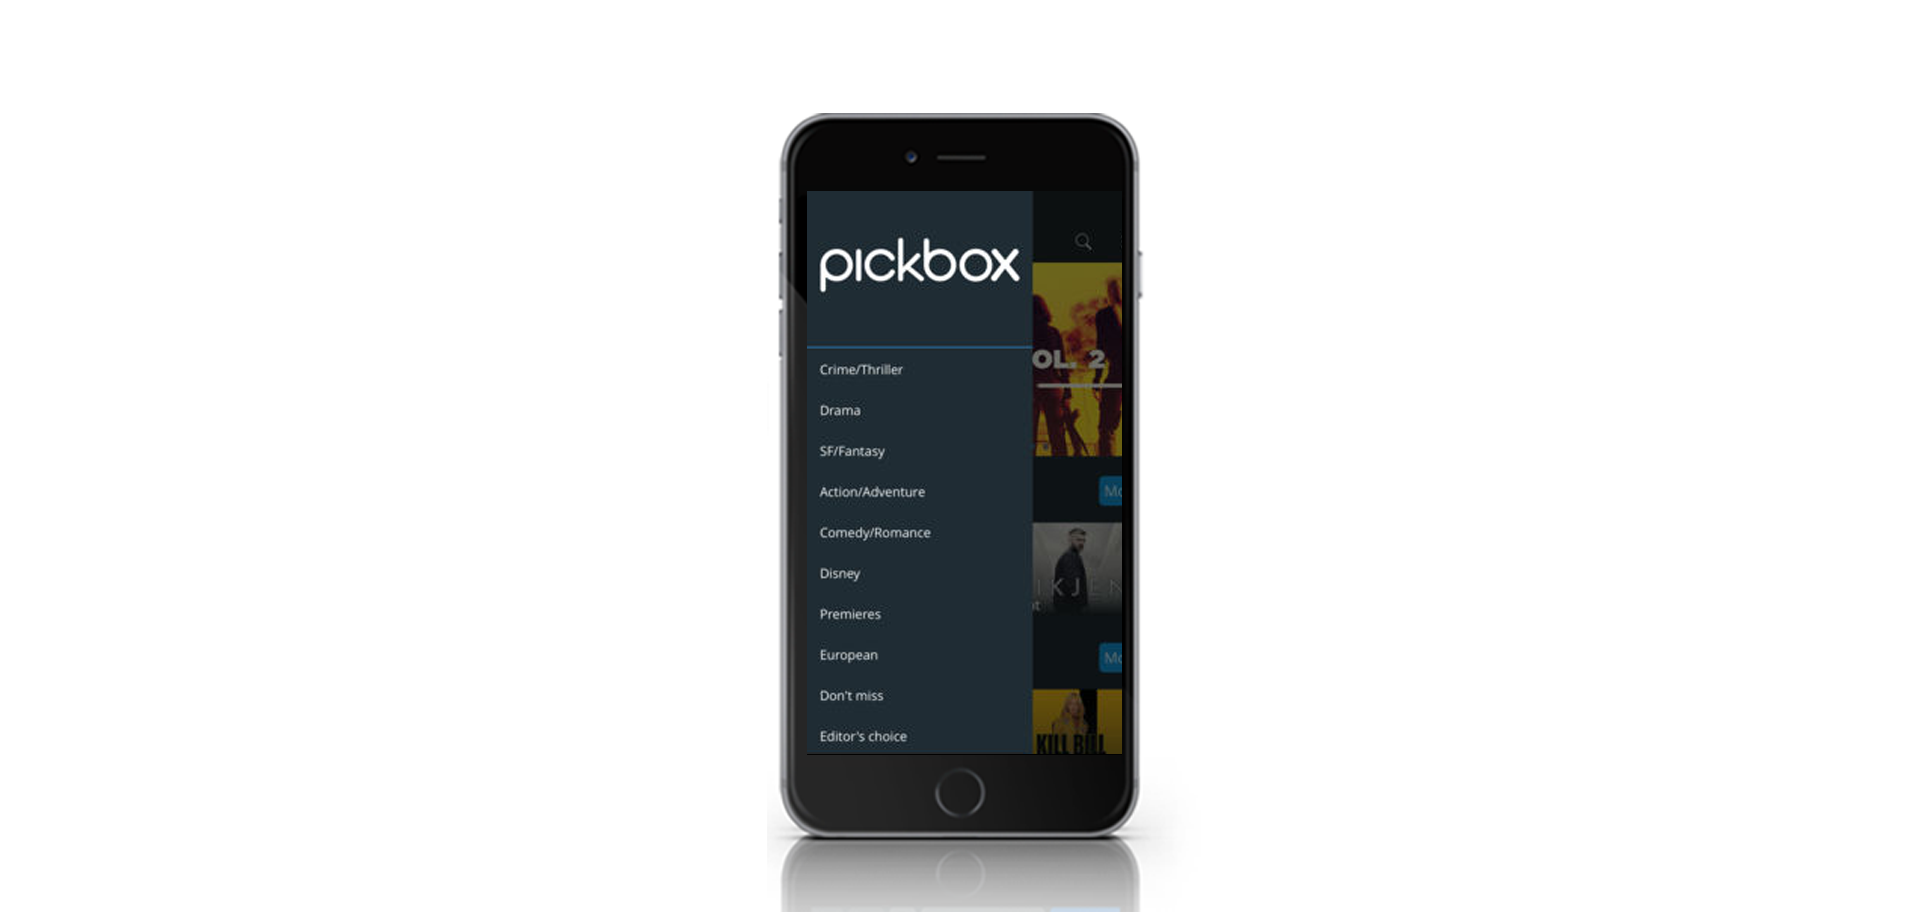 Pickbox 2